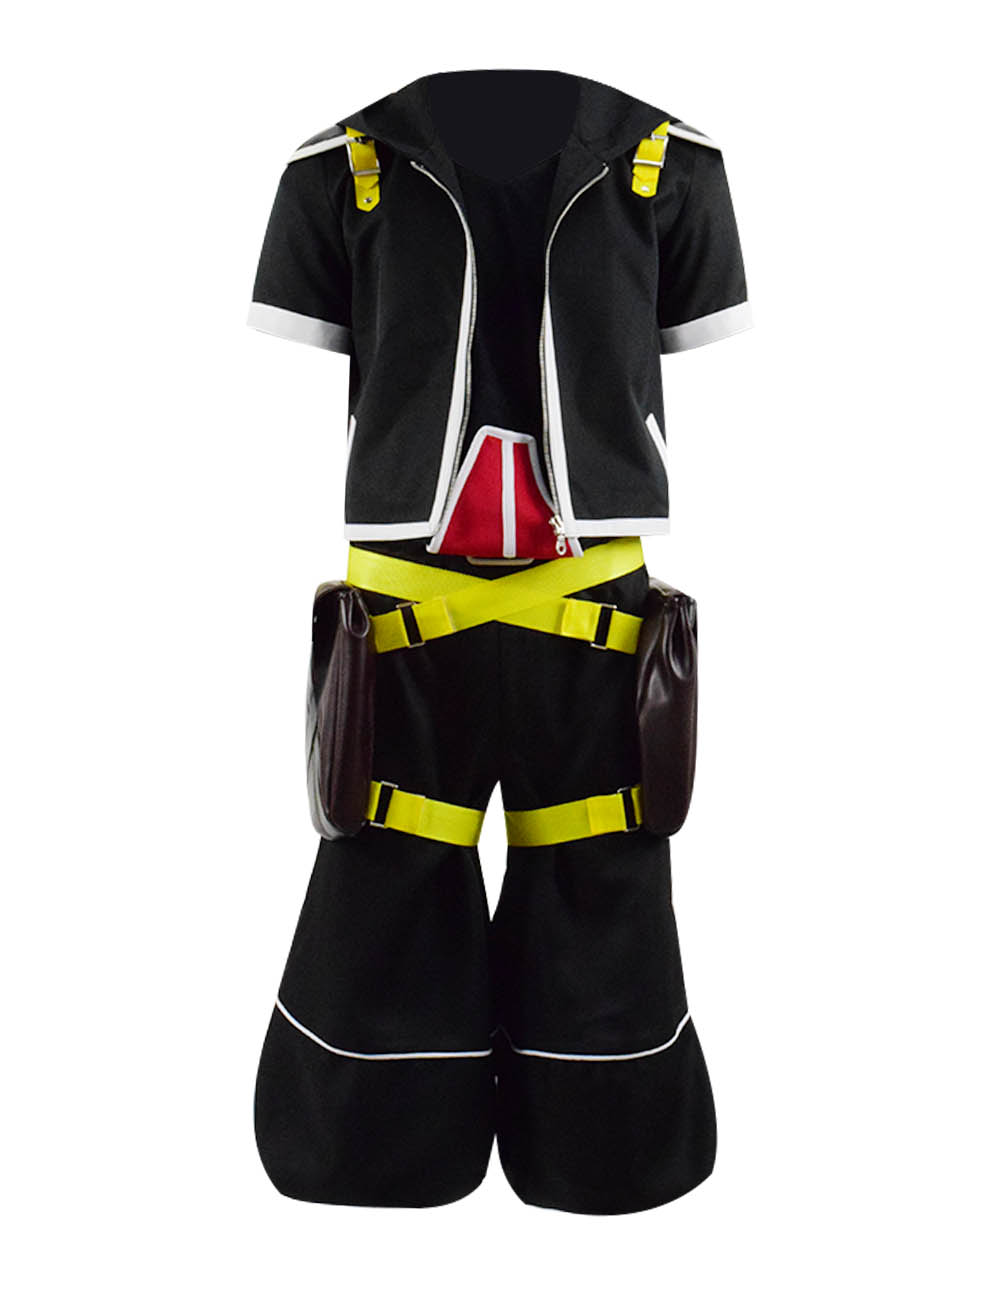 Kingdom Hearts Iii Protagonist Sora Cosplay Costume Outfit Uniform Full Set For Carnival Show